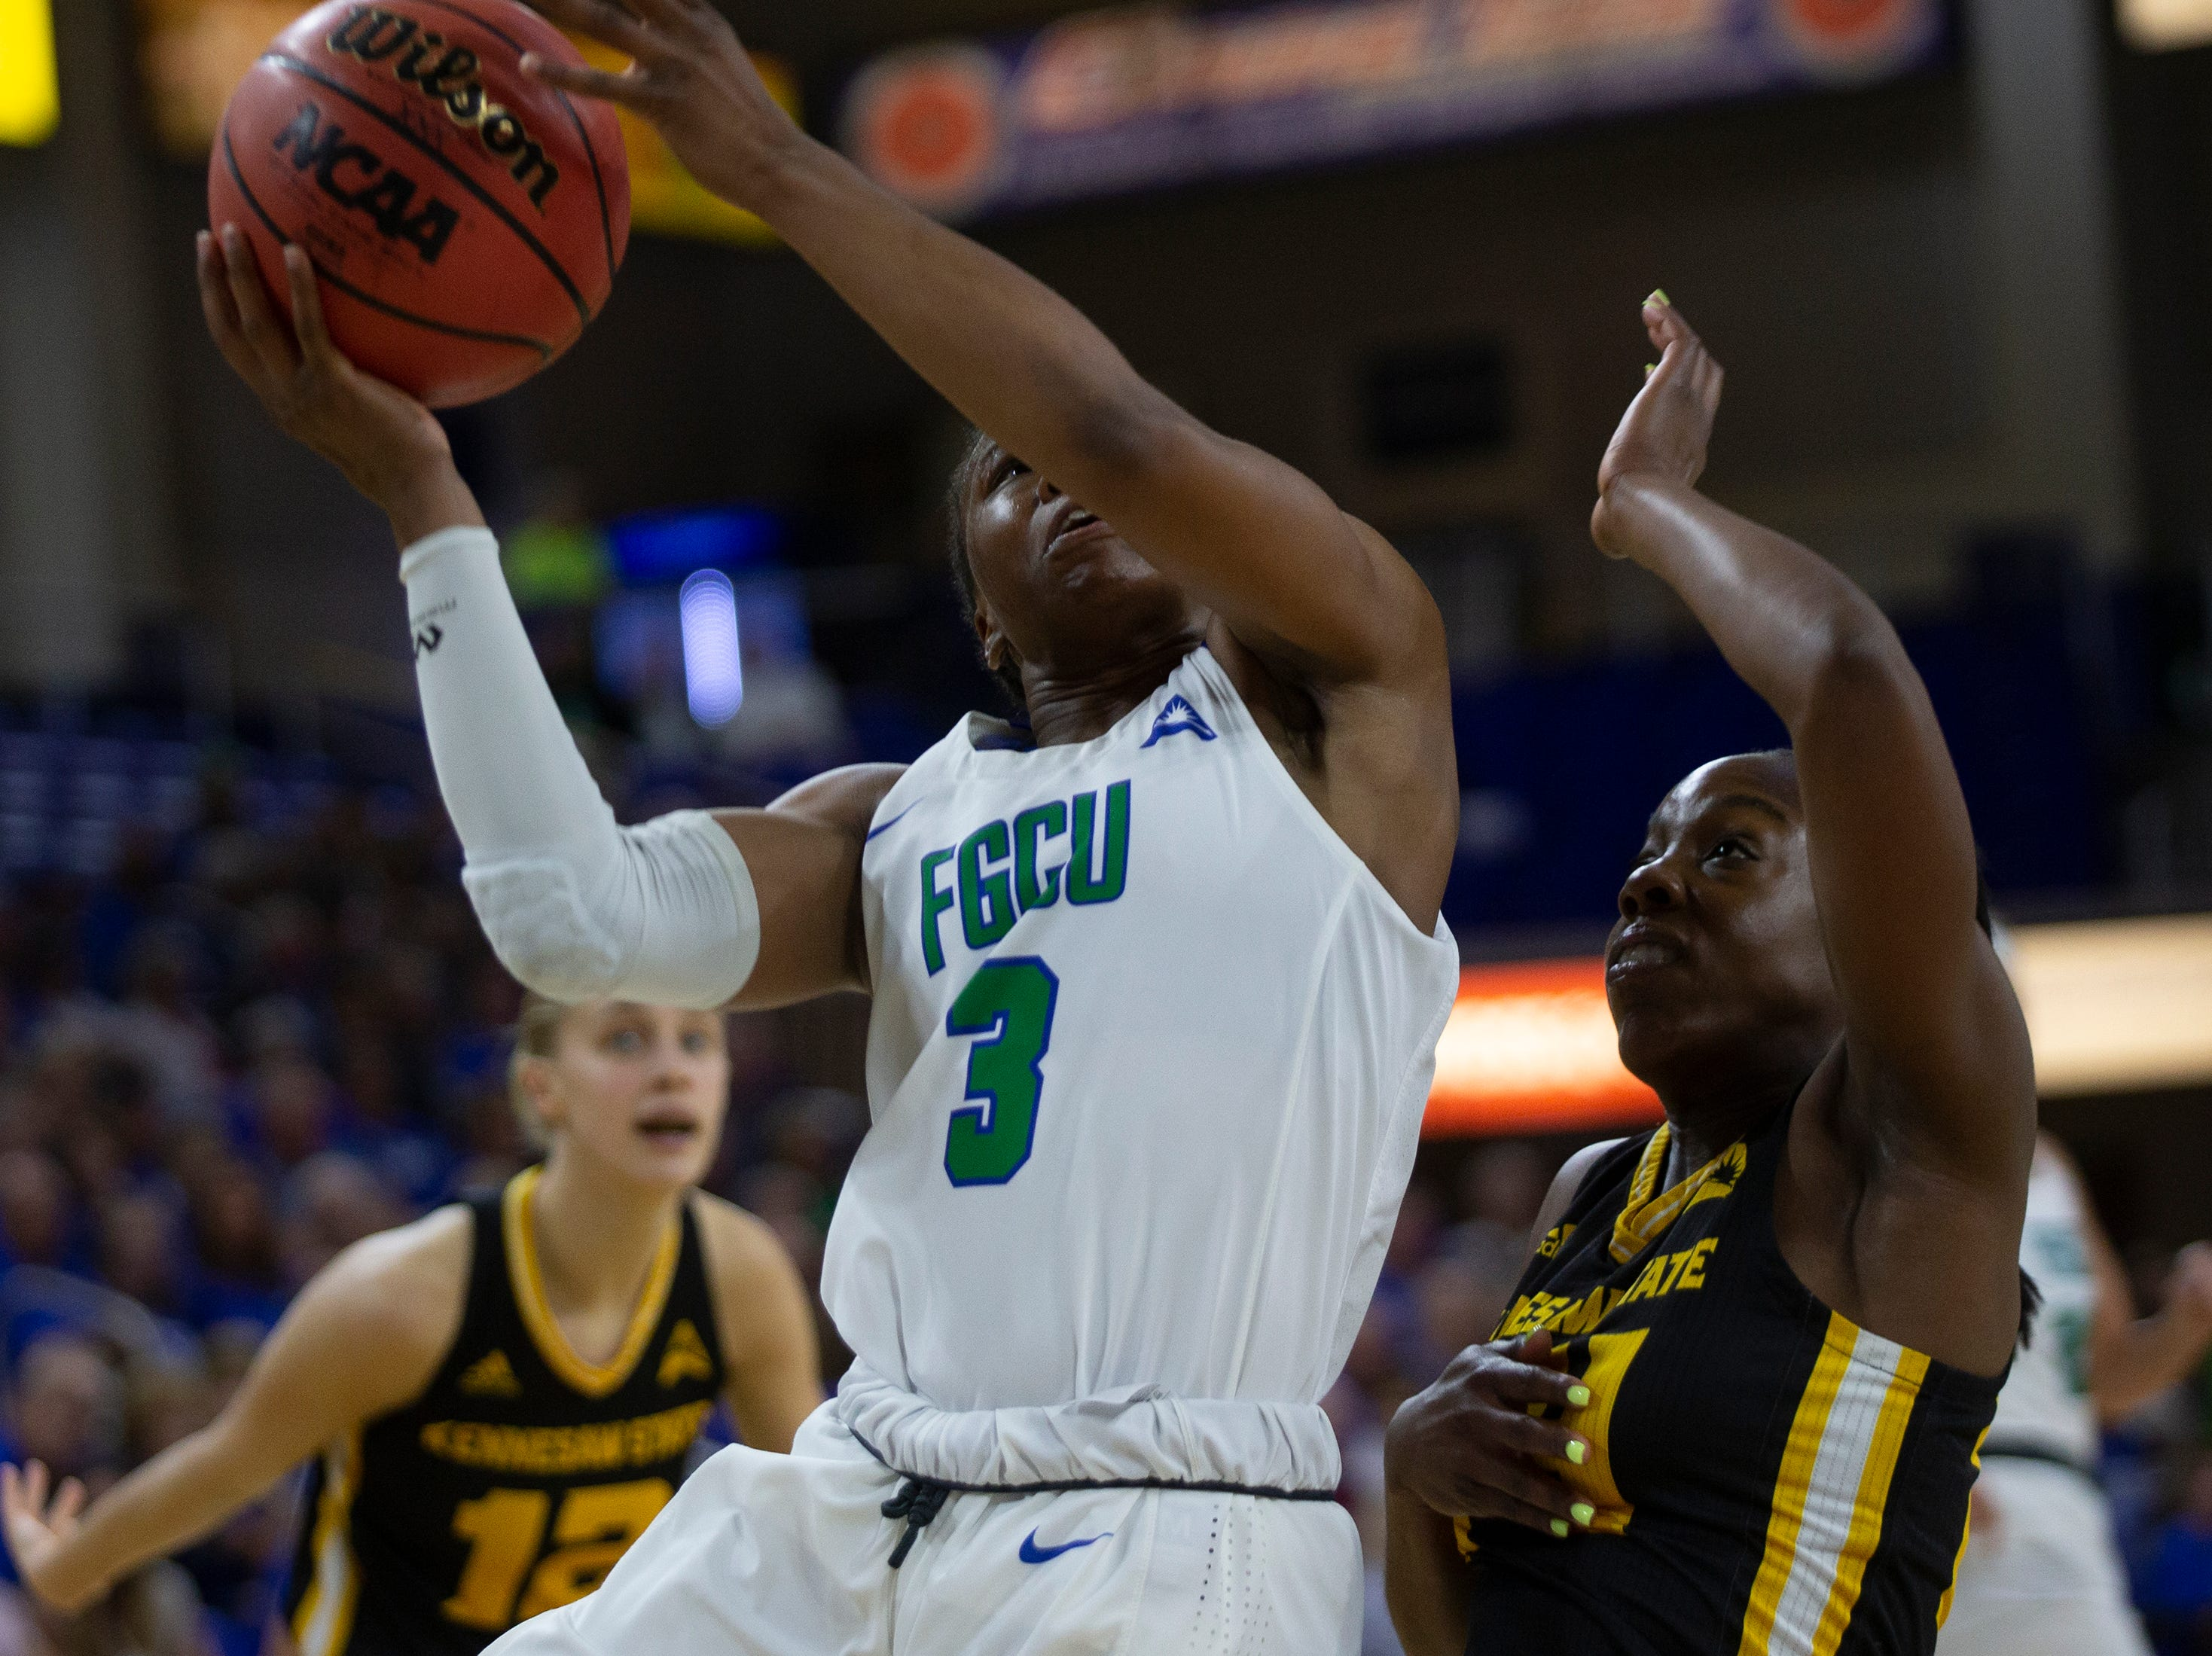 Florida Gulf Coast University's Keri Jewett-Giles attempts a shot game against Kennesaw State, Wednesday, March 13, 2019, at Florida Gulf Coast University's Alico Arena.